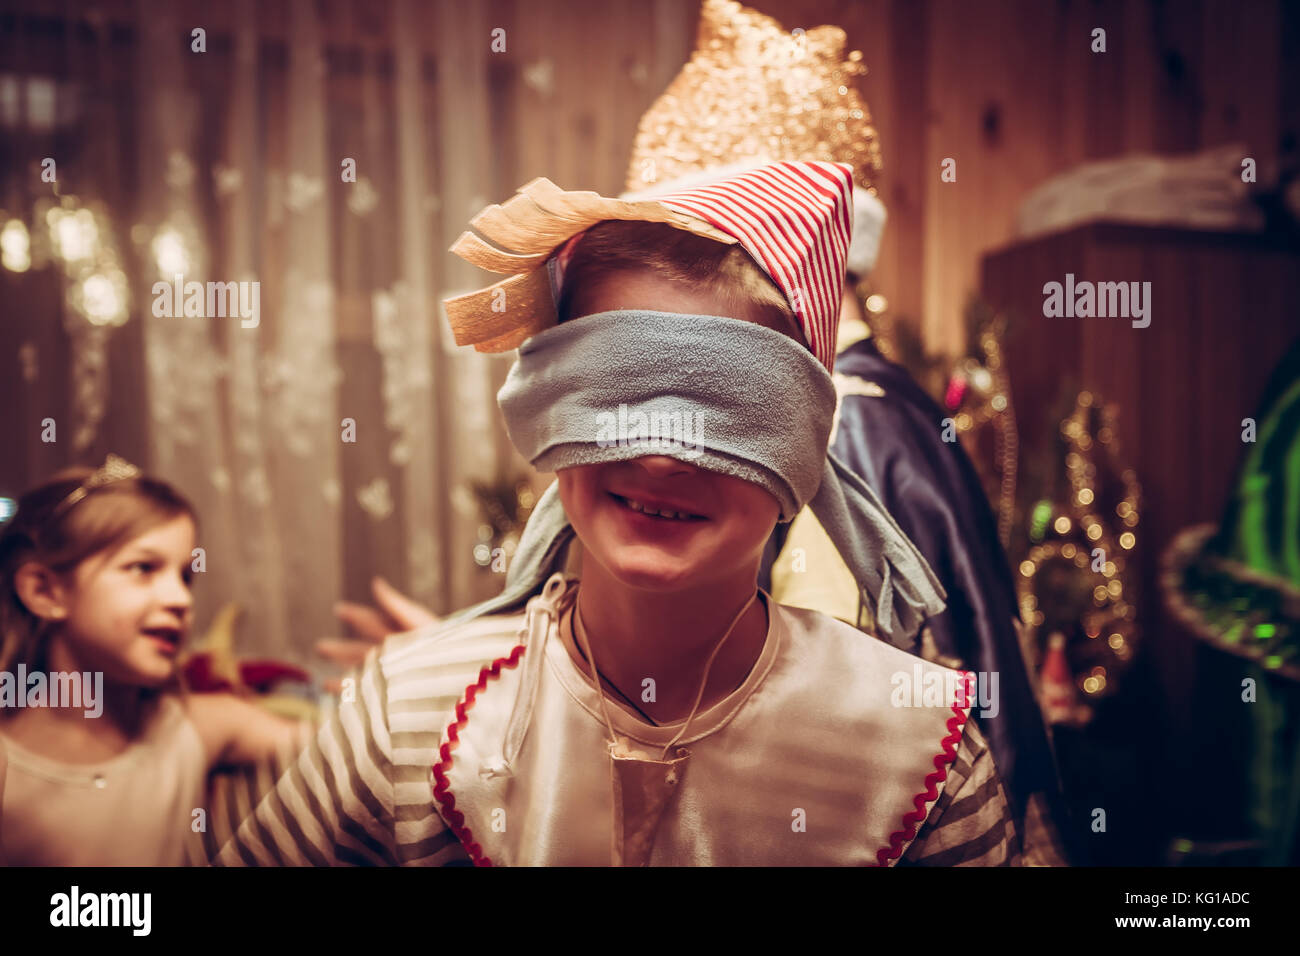 Happy child in carnival costume of Pinocchio during Christmas holidays celebration - Stock Image